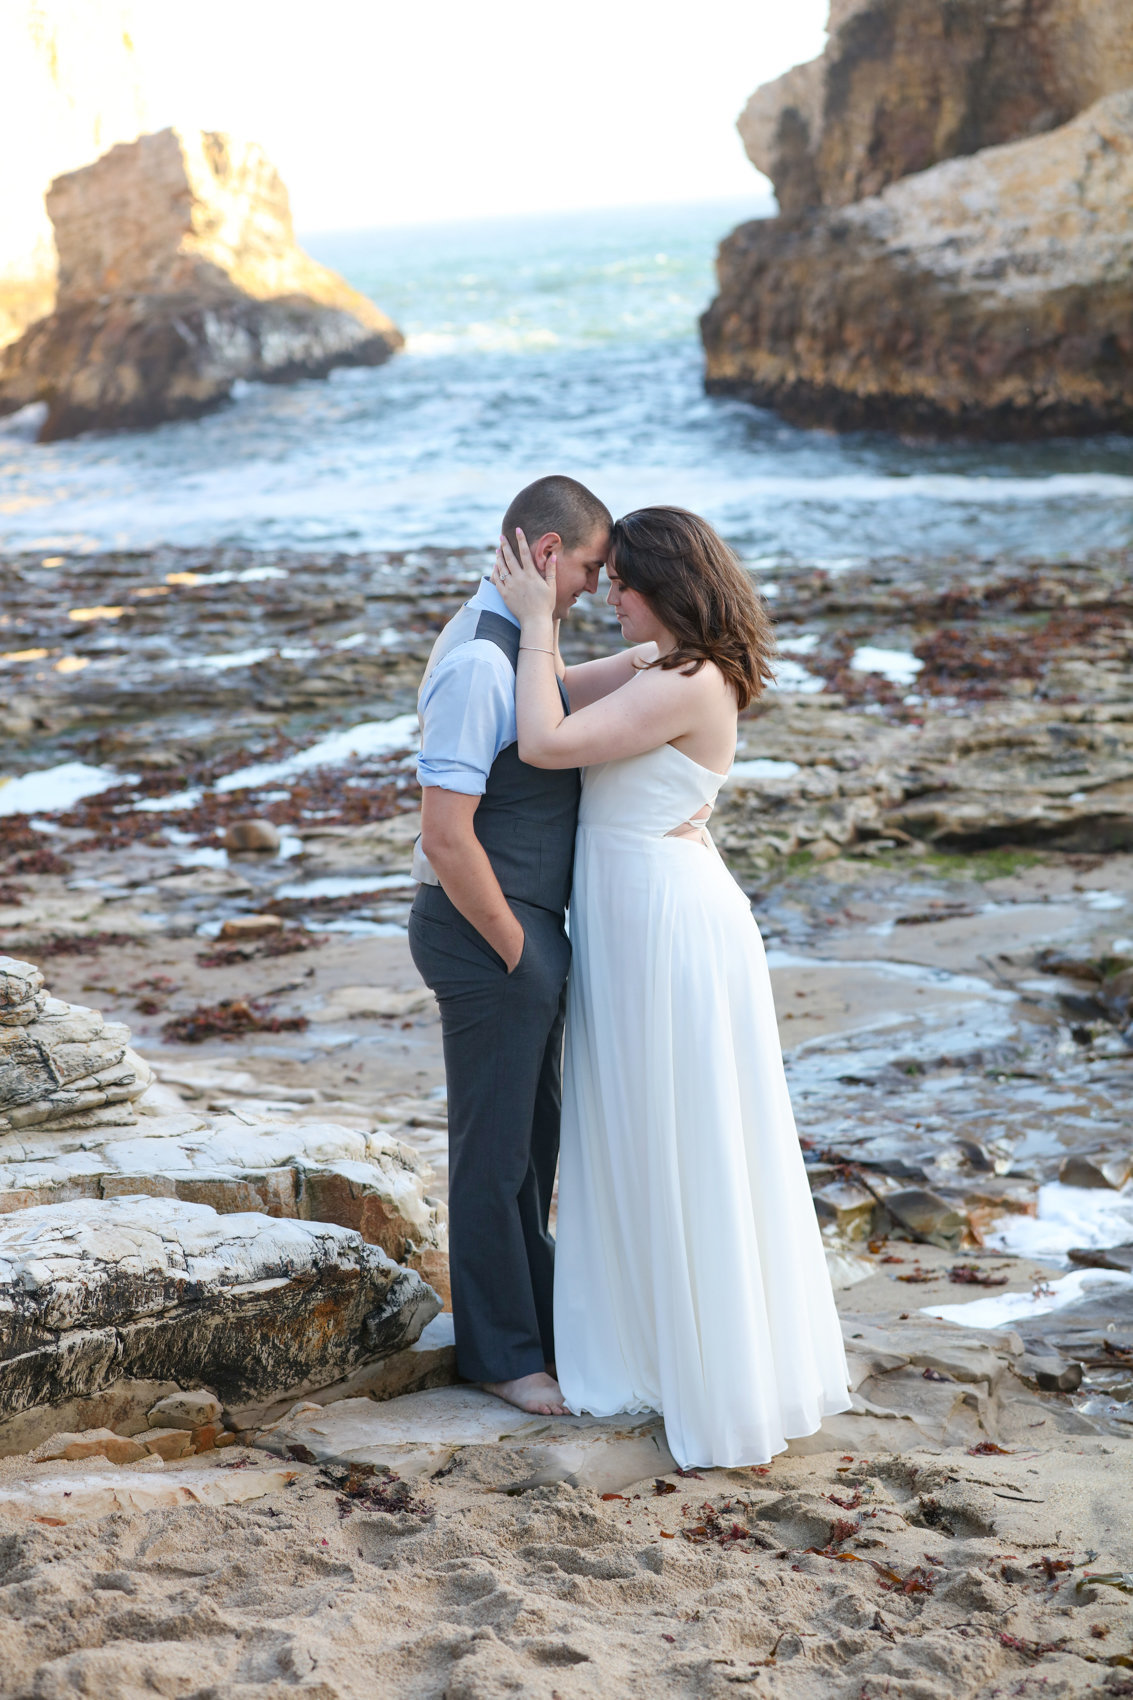 Natural light portraits on beach, DeNeffe studios engagement and wedding photography